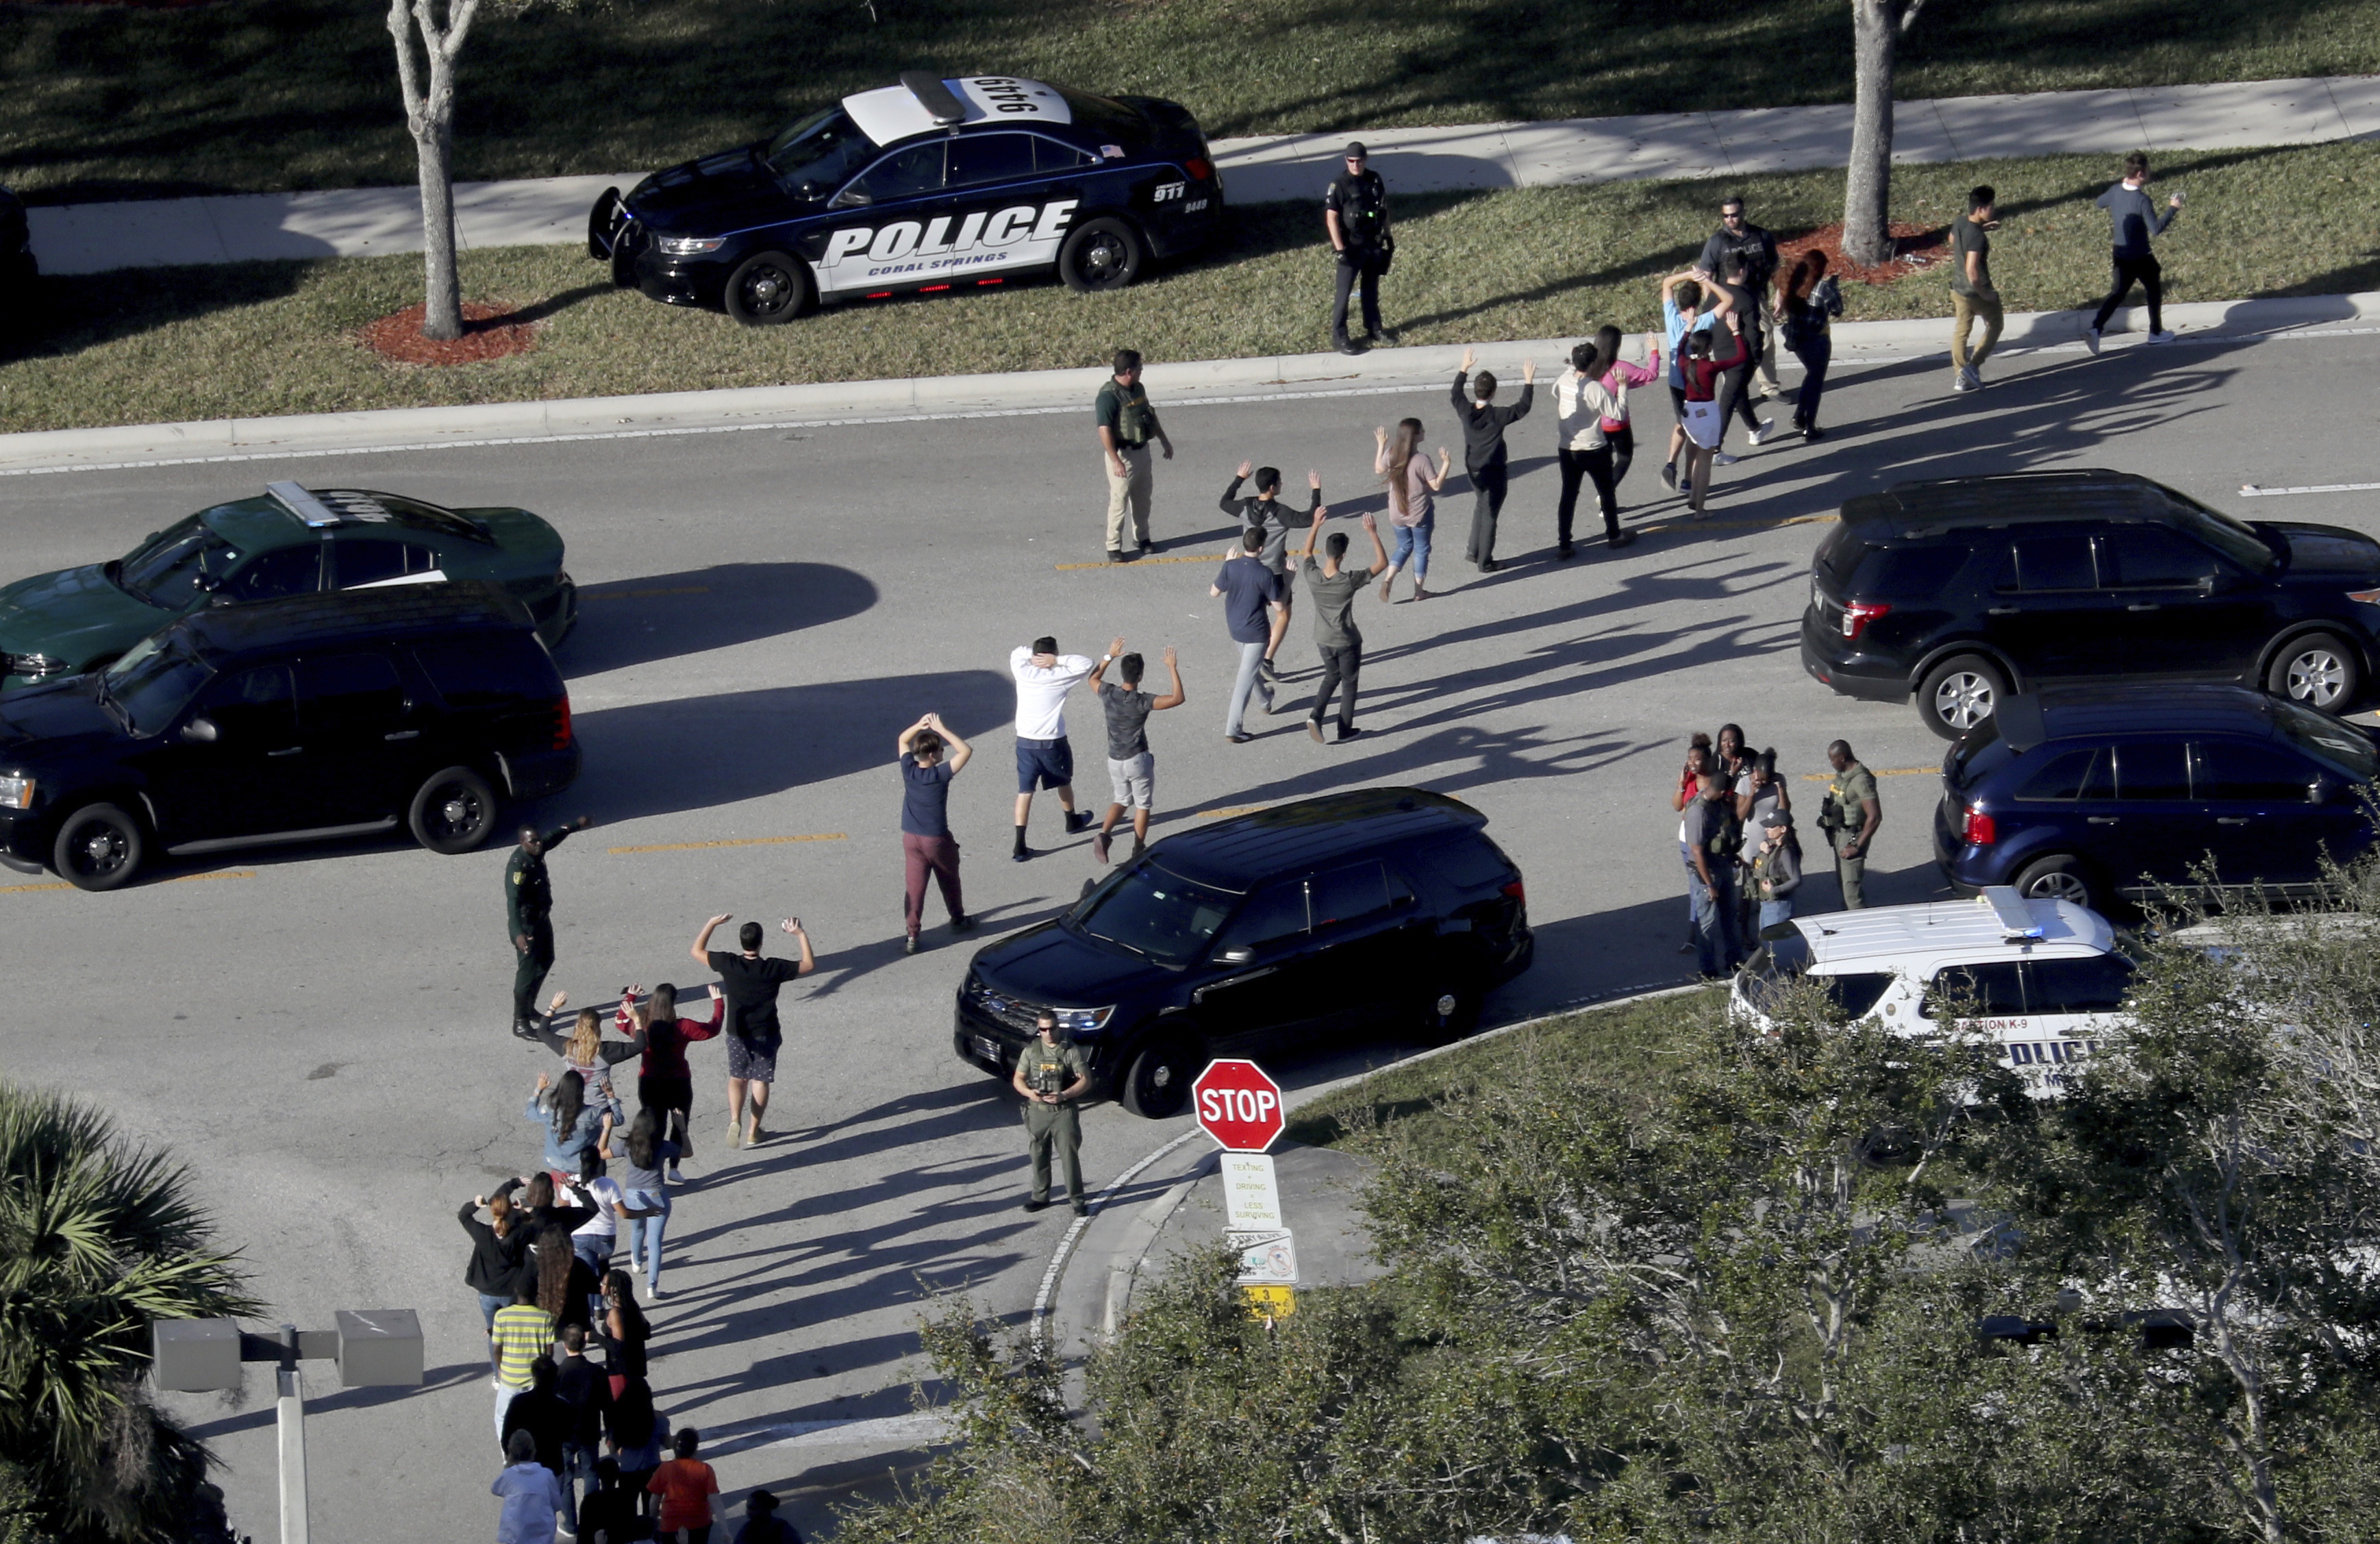 Students hold their hands in the air as they are evacuated by police from Marjory Stoneman Douglas High School in Parkland, Fla. on Feb. 14, 2018.